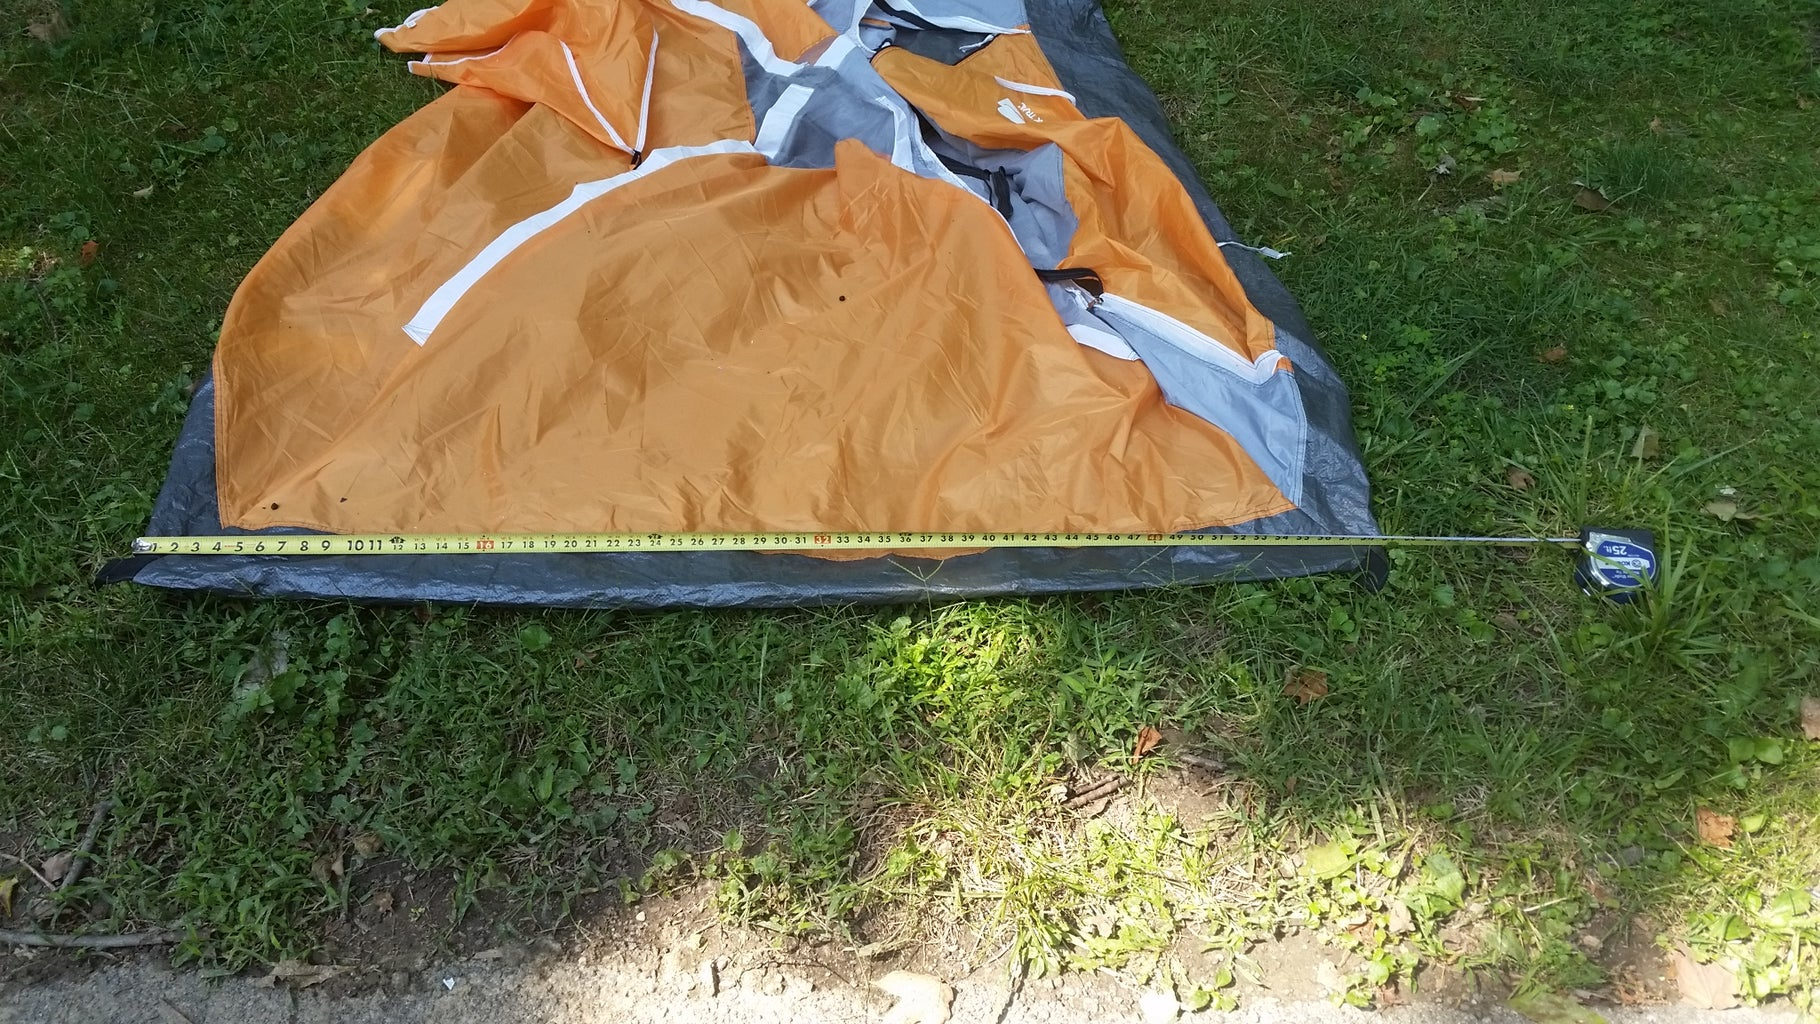 Measure the Tent and Bag